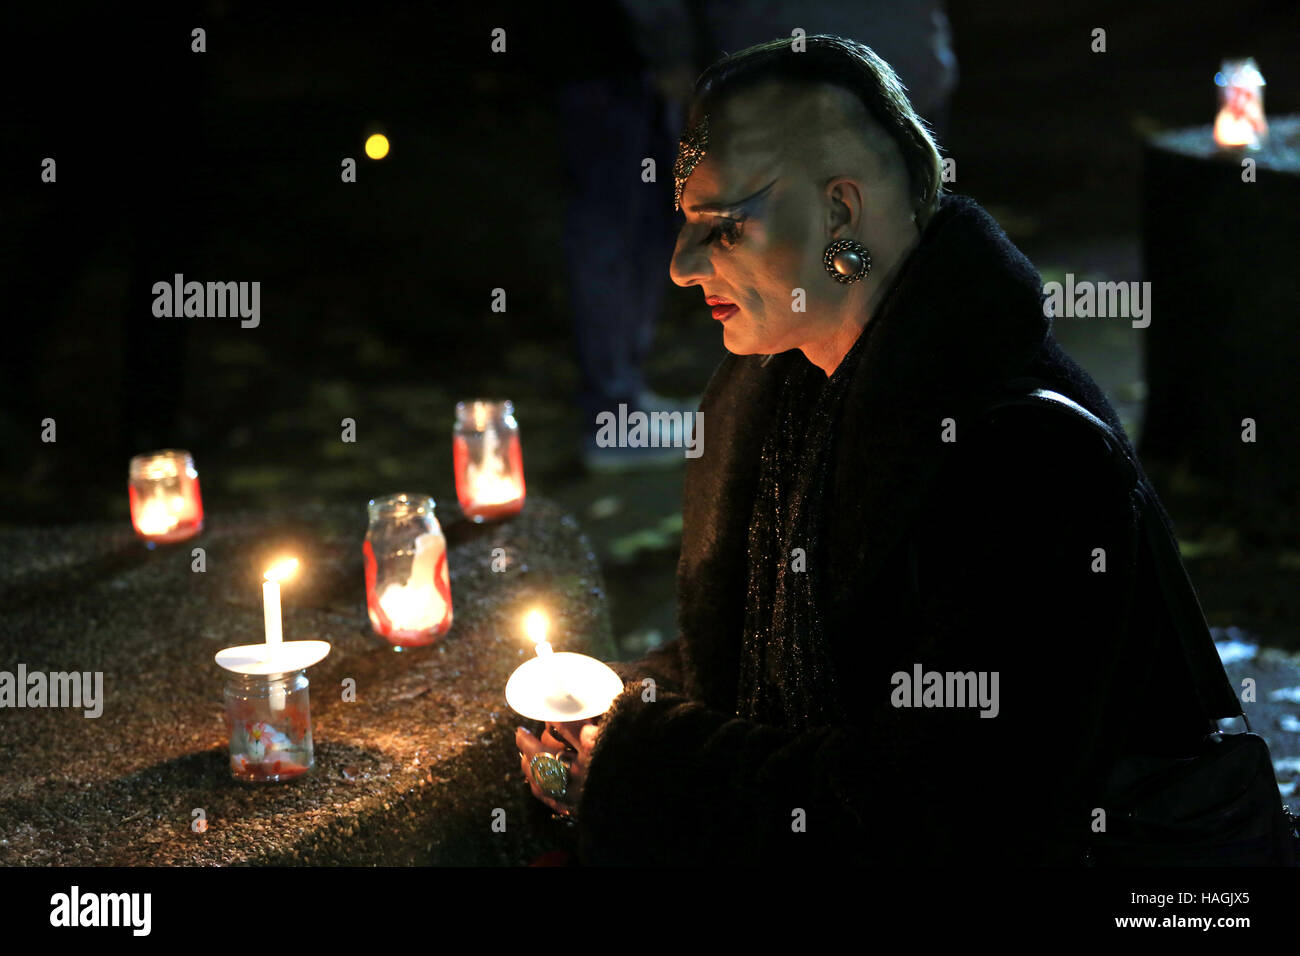 A vigil for World Aids Day with a person with a candle, Sackville Gardens,Gay Village, Manchester, UK, 1st December, - Stock Image